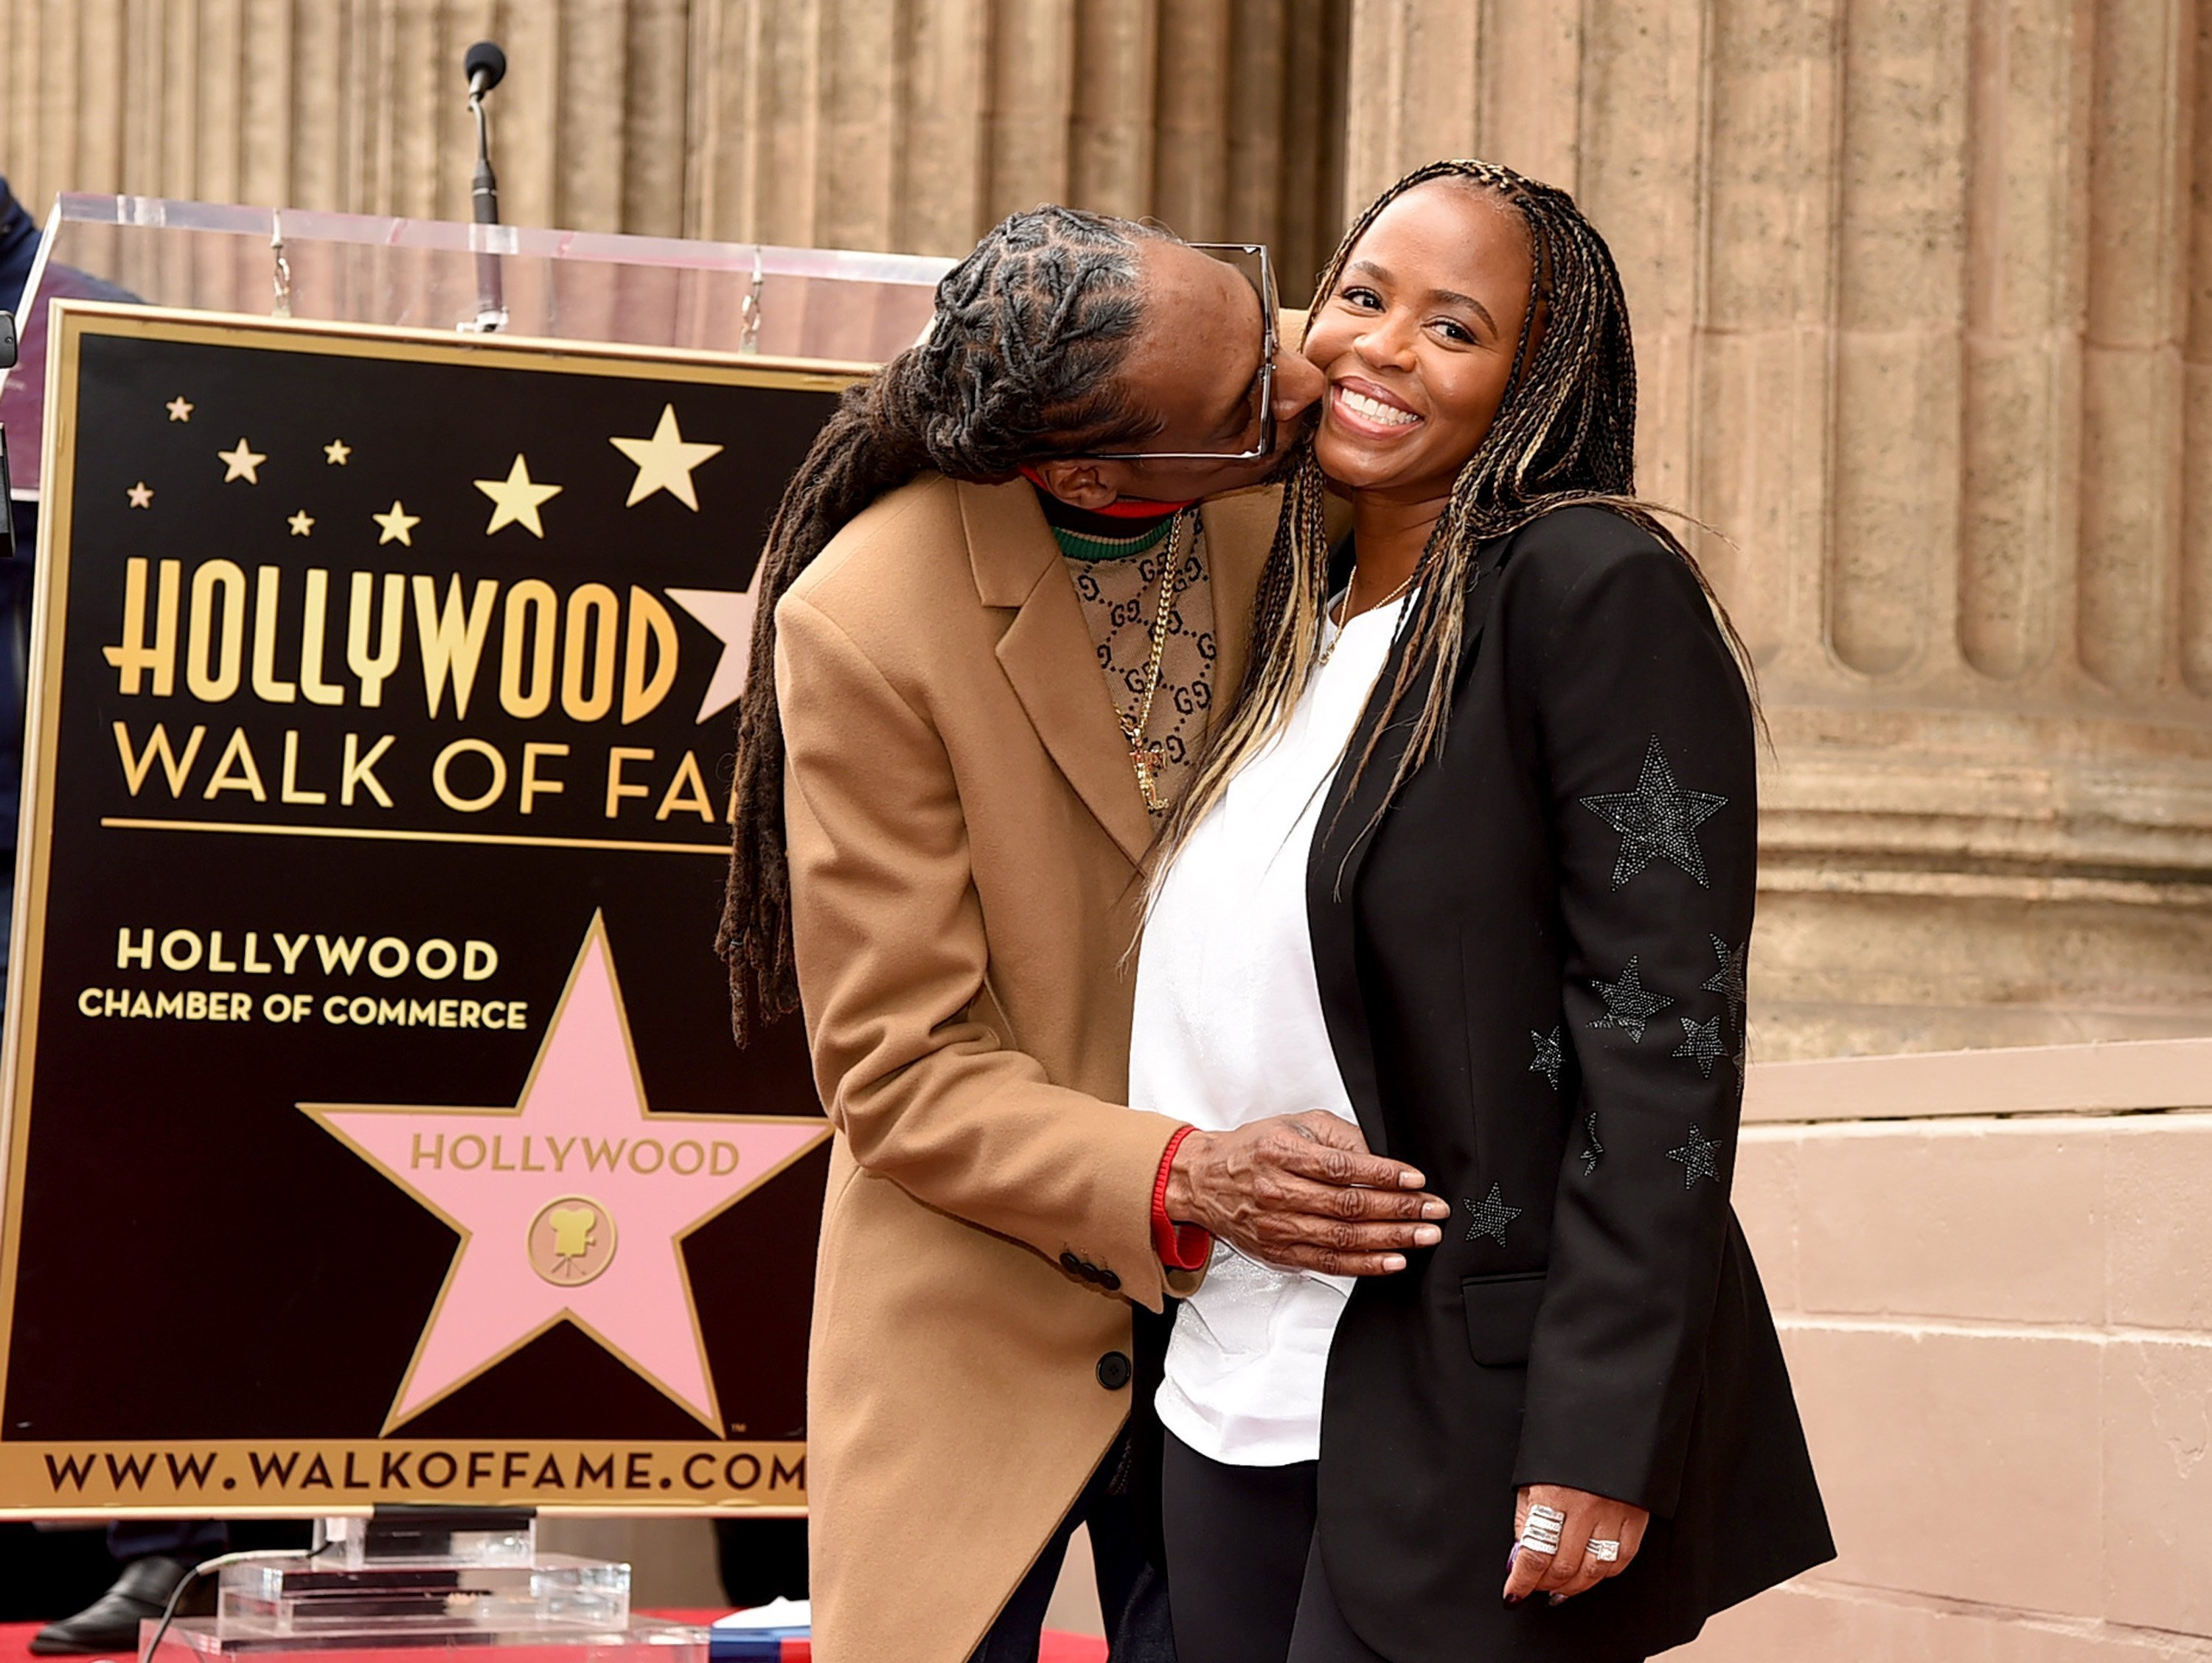 Snoop Dogg, with his wife Shante Broadus, is honored with a star on The Hollywood Walk Of Fame on Hollywood Boulevard on November 19, 2018. | Photo: GettyImages